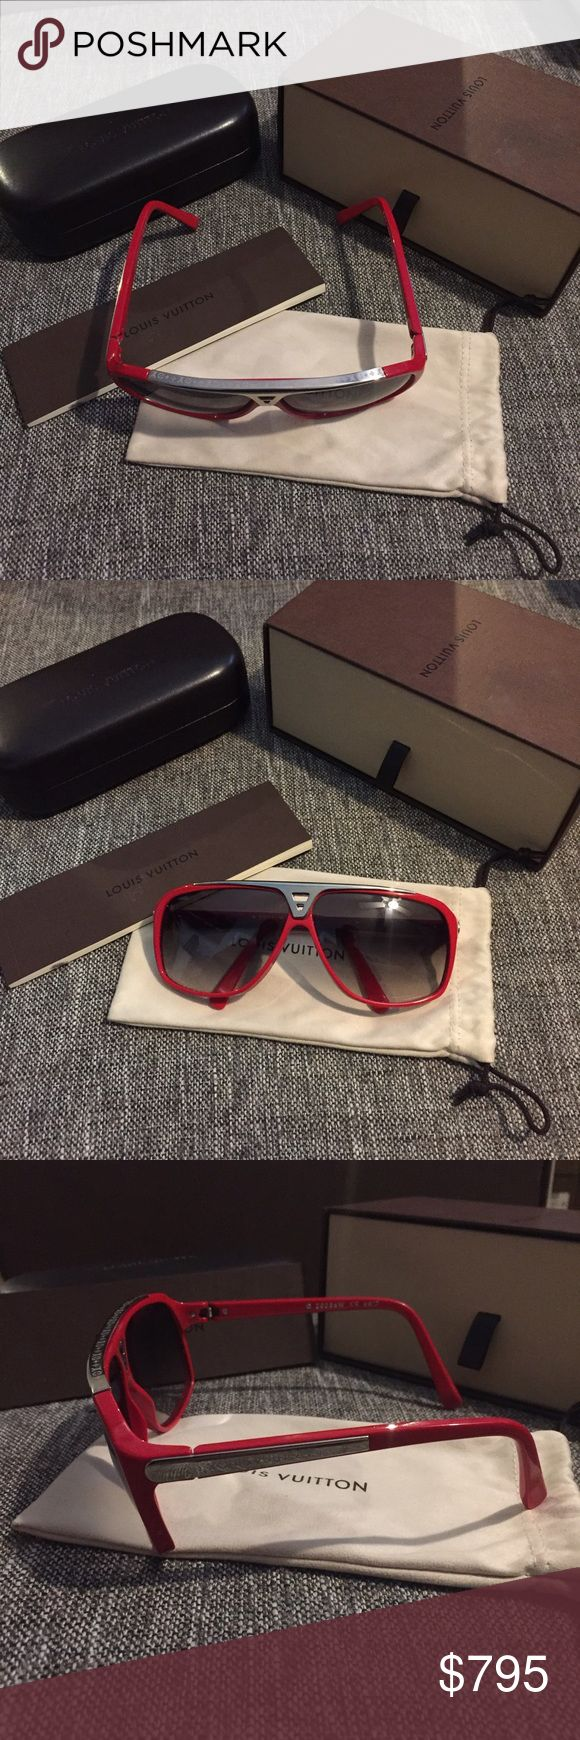 0aa3d7adf0e1 Louis Vuitton Sunglasses Evidence Red